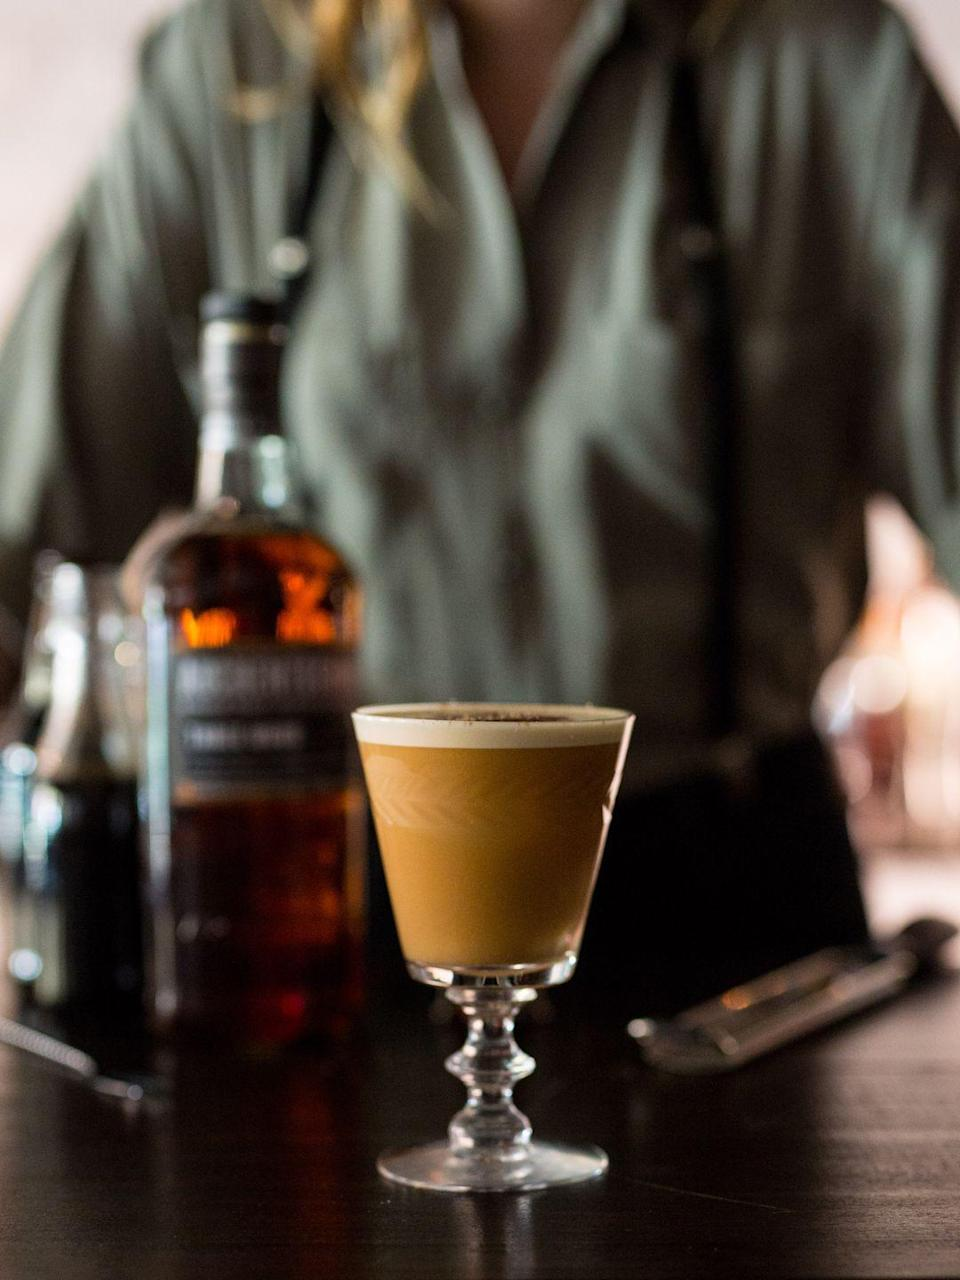 <p><strong>Ingredients</strong><br>2 oz Auchentoshan Three Wood Single Malt Scotch Whisky <br>1 oz chocolate stout <br>1 whole egg <br>4 dashes Peychaud's bitters <br>.5 oz brown sugar cayenne syrup* </p><p><strong>Instructions</strong><br>Add whisky, chocolate stout, whole egg, Peychaud's Bitters, and brown sugar cayenne syrup to cocktail shaker. Shake until egg is broken down and drink is frothy. Strain into footed rocks glass with fresh ice. Garnish with nutmeg.</p><p>*Brown sugar cayenne syrup: combine 2 cups light brown sugar, 1 cup water, and 2 tsp cayenne pepper in a saucepan over medium heat. Bring to boil. Let cool and keep in refrigerator.</p>